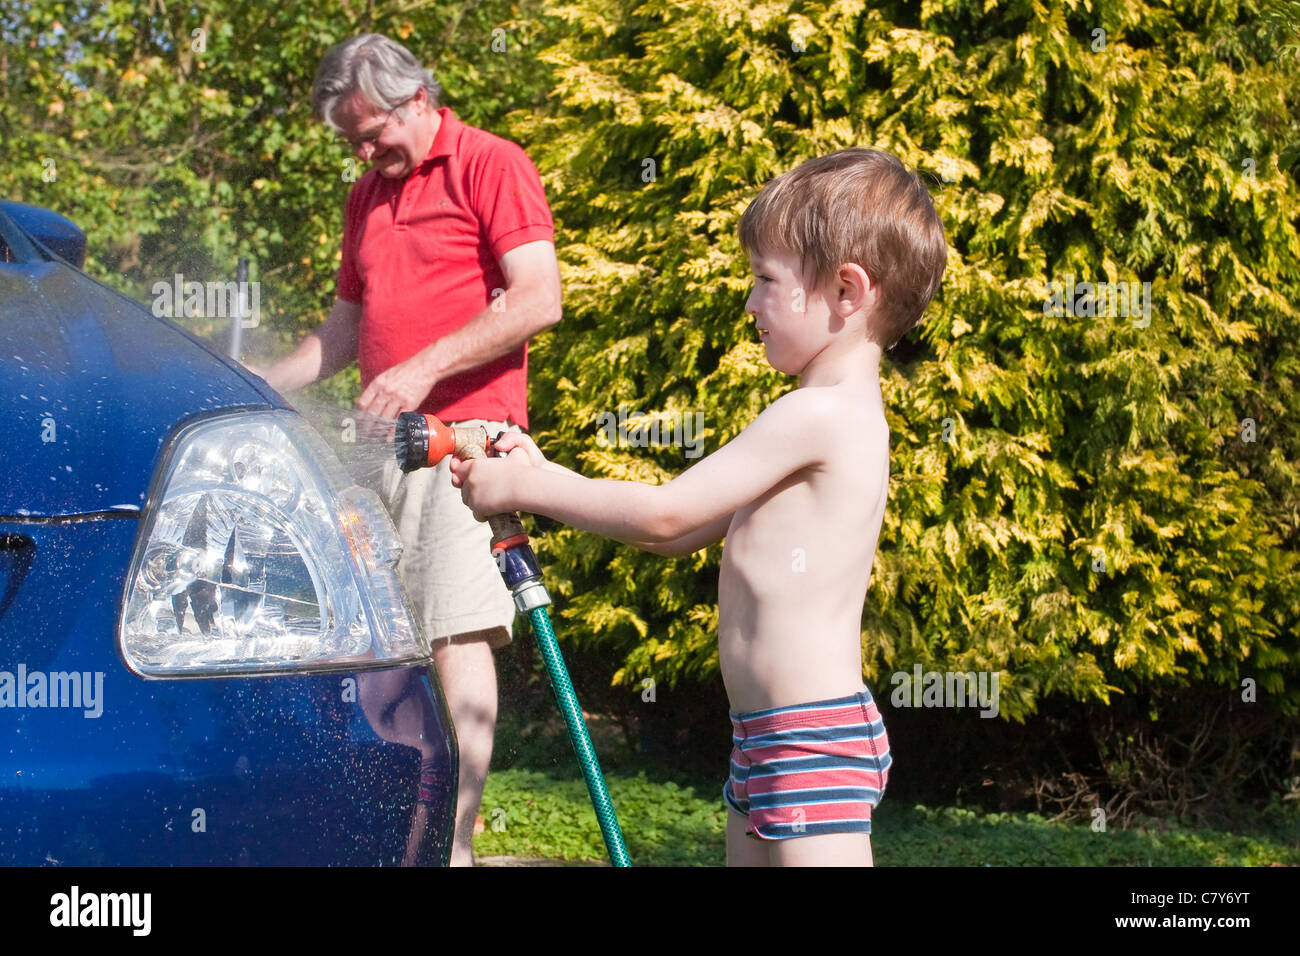 Grandad and grandson washing car together during the October heat wave in the UK, 2011 - Stock Image